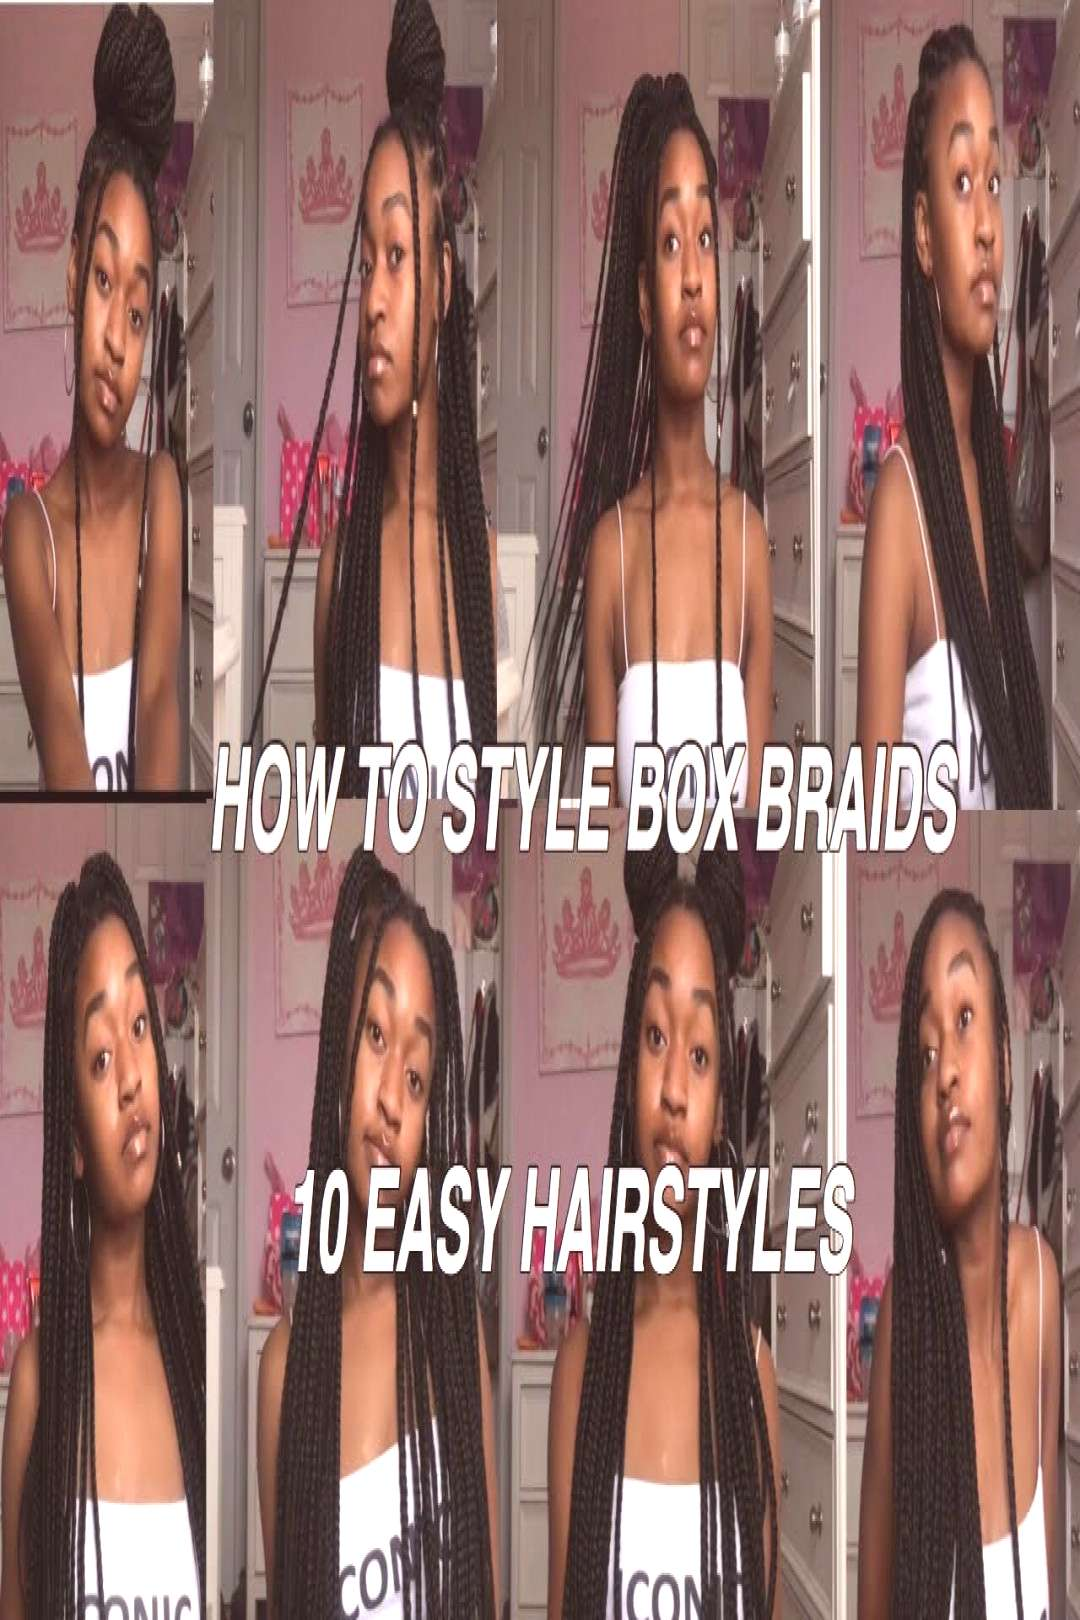 Makeup tools  how to style box braids, box braids hairstyles for black women, box braids with colo